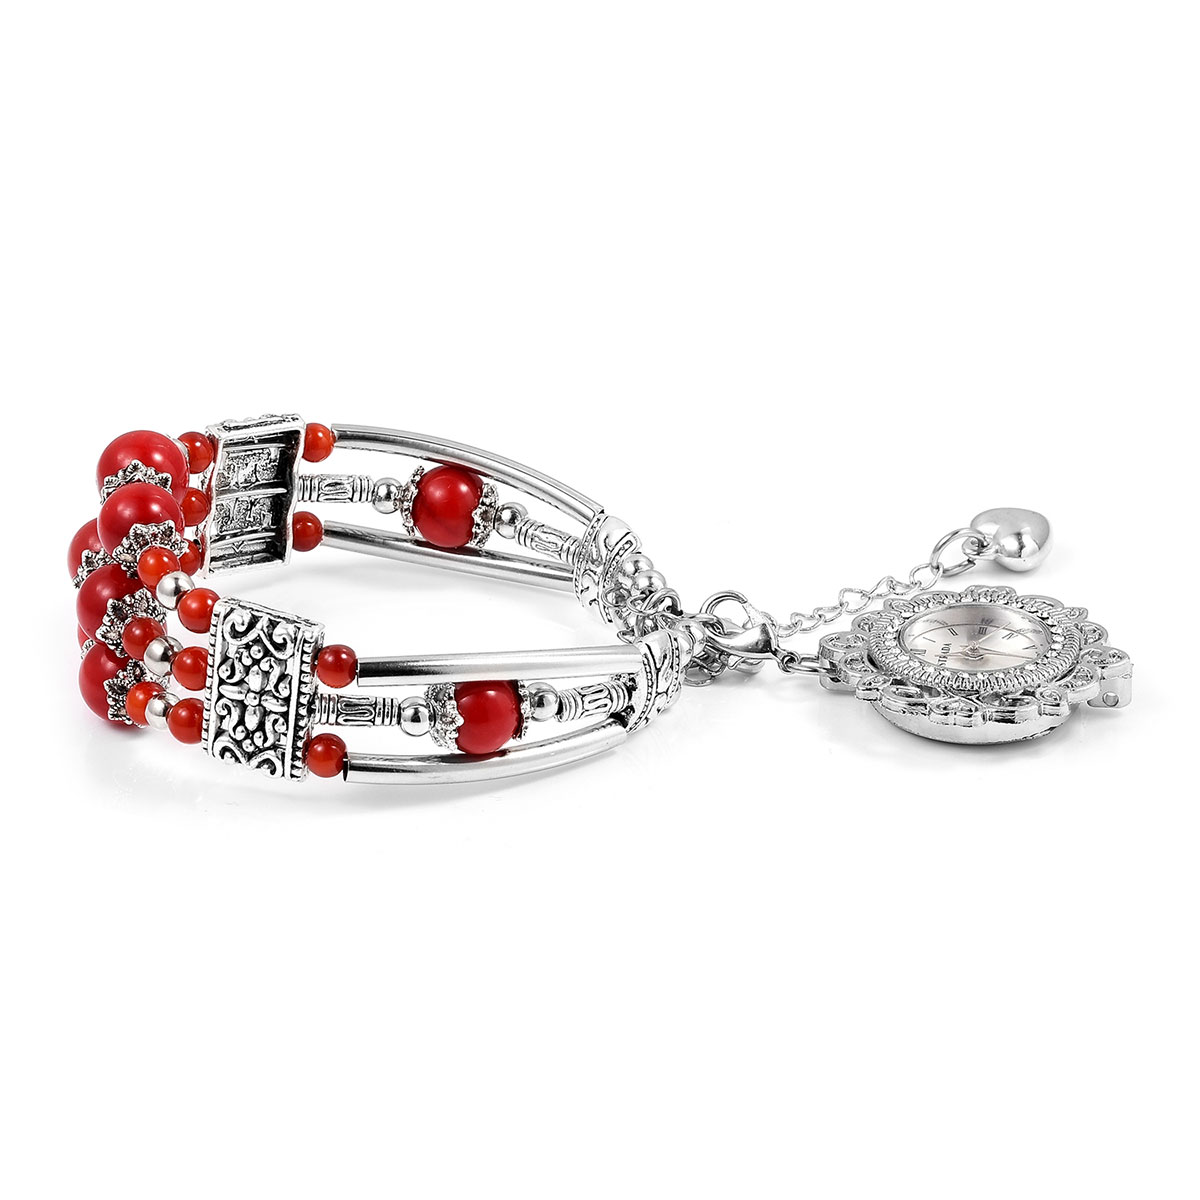 STRADA Coral, White Austrian Crystal Cuff Bracelet with Removable Japanese  Movement Water Resistant Watch Charm and 2 Extender in Silvertone with